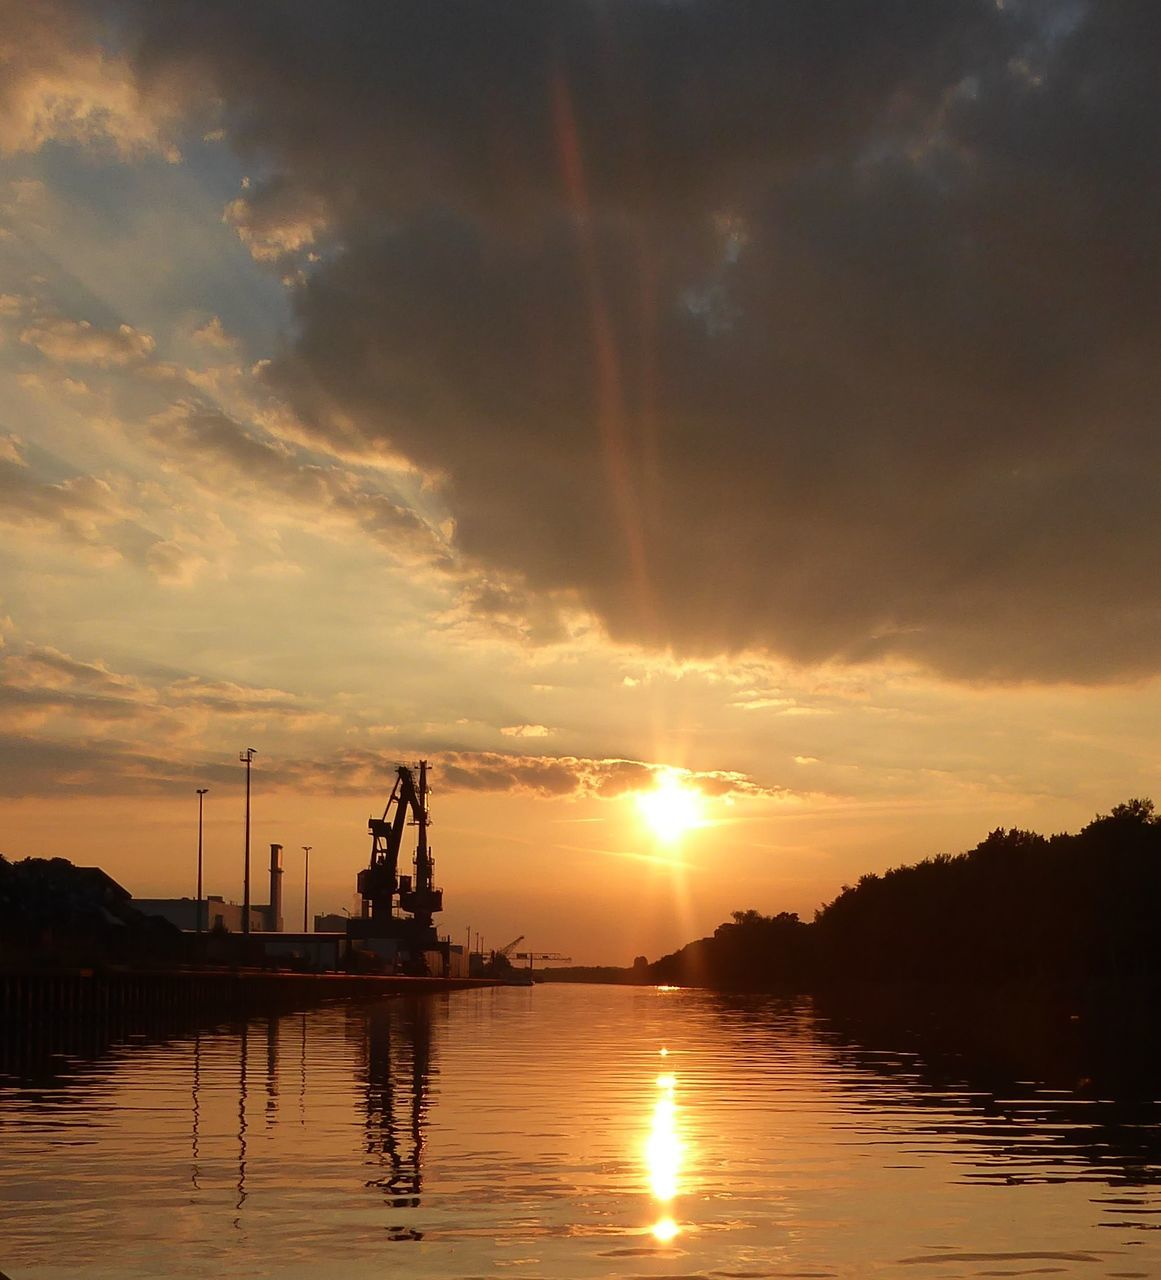 sunset, sky, cloud - sky, water, sun, reflection, silhouette, orange color, beauty in nature, nature, scenics - nature, sunlight, industry, waterfront, no people, tranquility, tranquil scene, outdoors, transportation